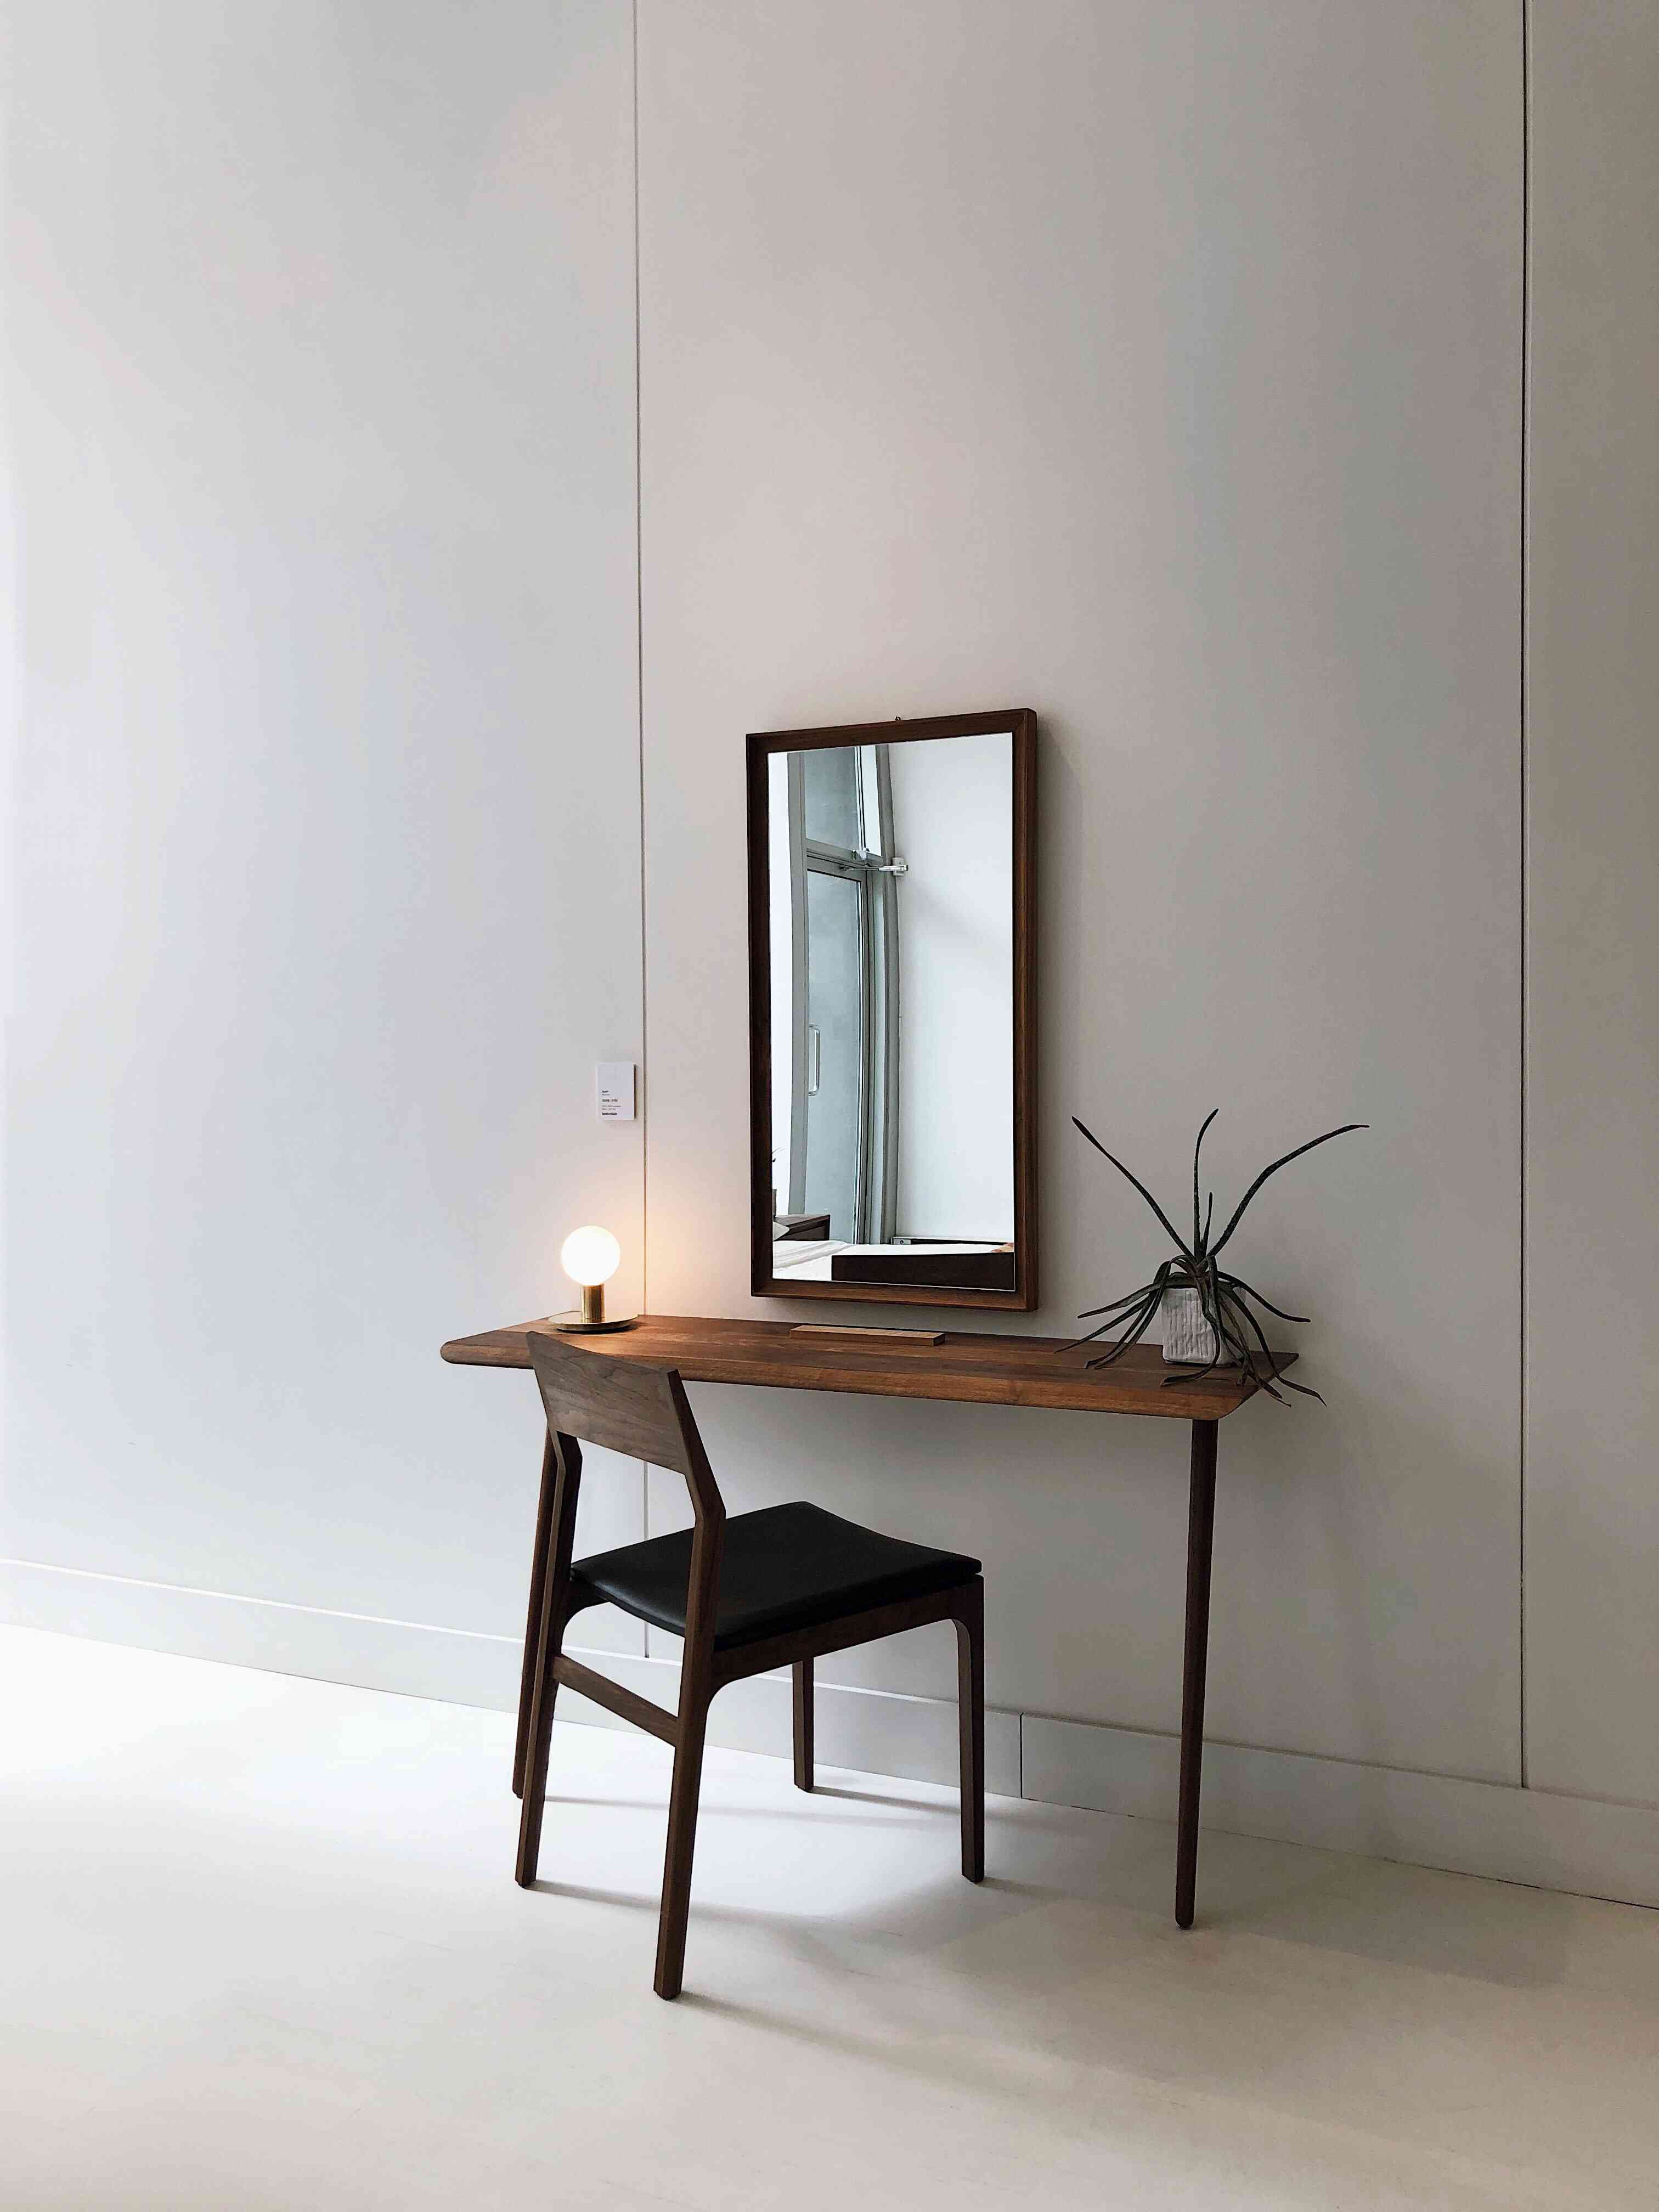 wood framed rectangular mirror over a desk and chair